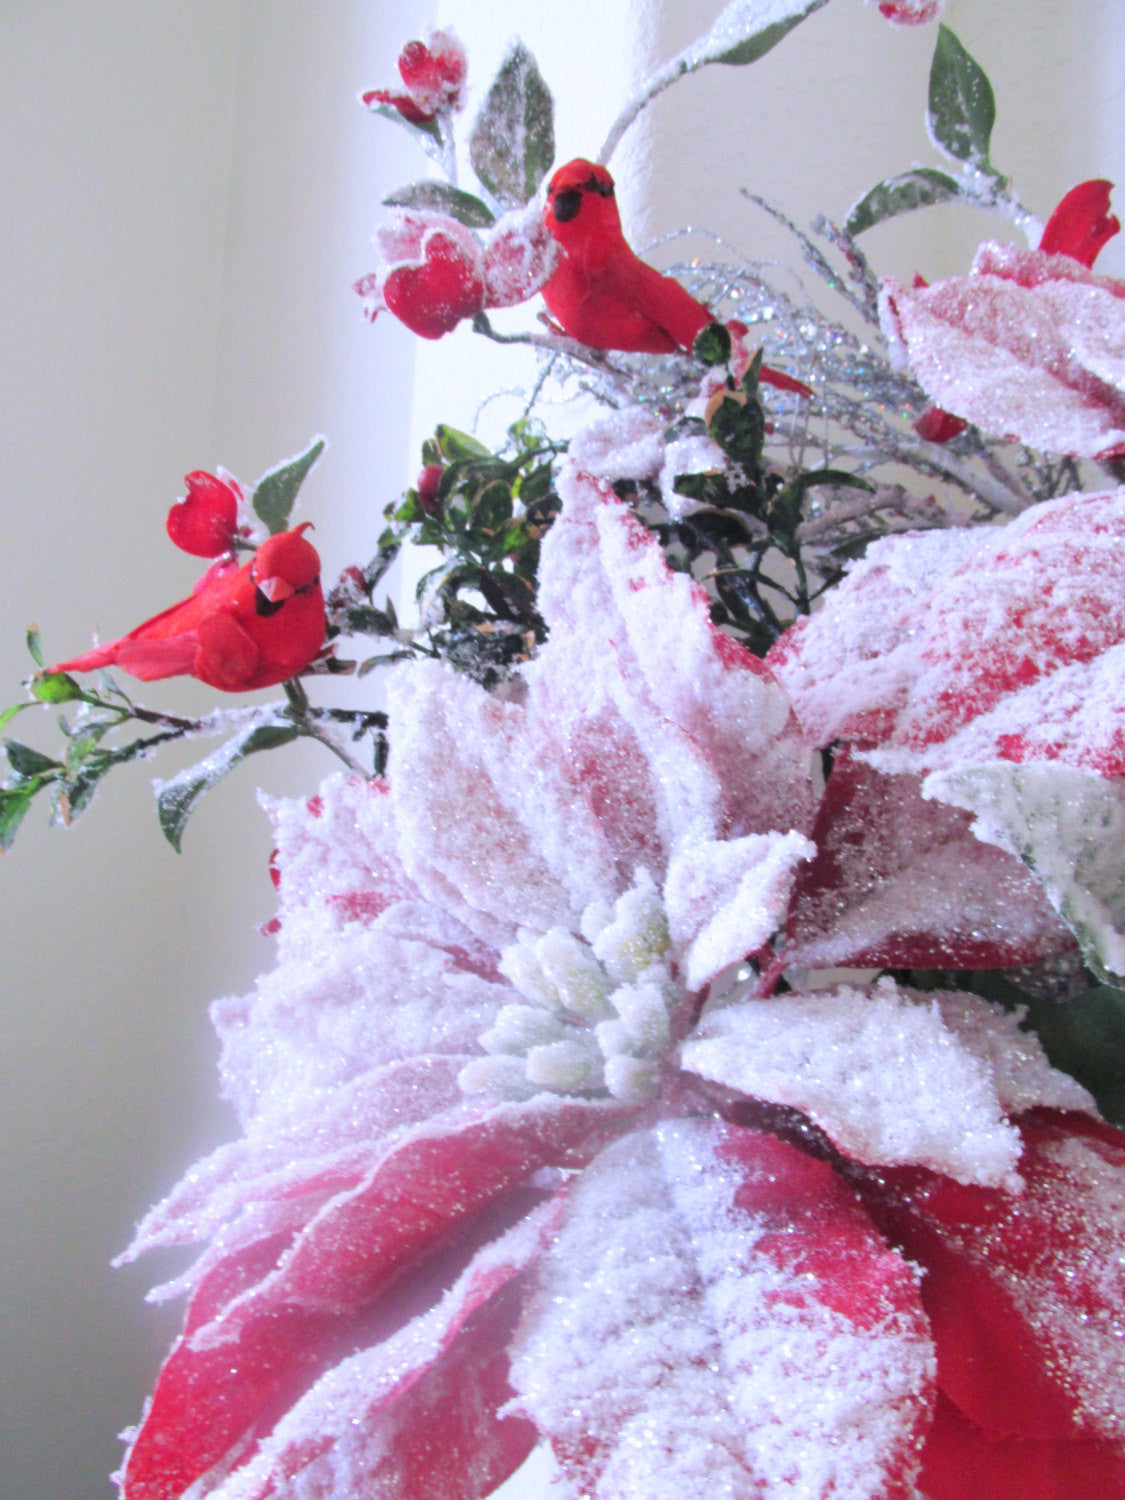 Christmas Holiday Decor Victorian Floral Centerpiece Arrangement with Tall Red Cardinals, Snowy Red and White Poinsettias and beaded fringe - Odyssey Creations